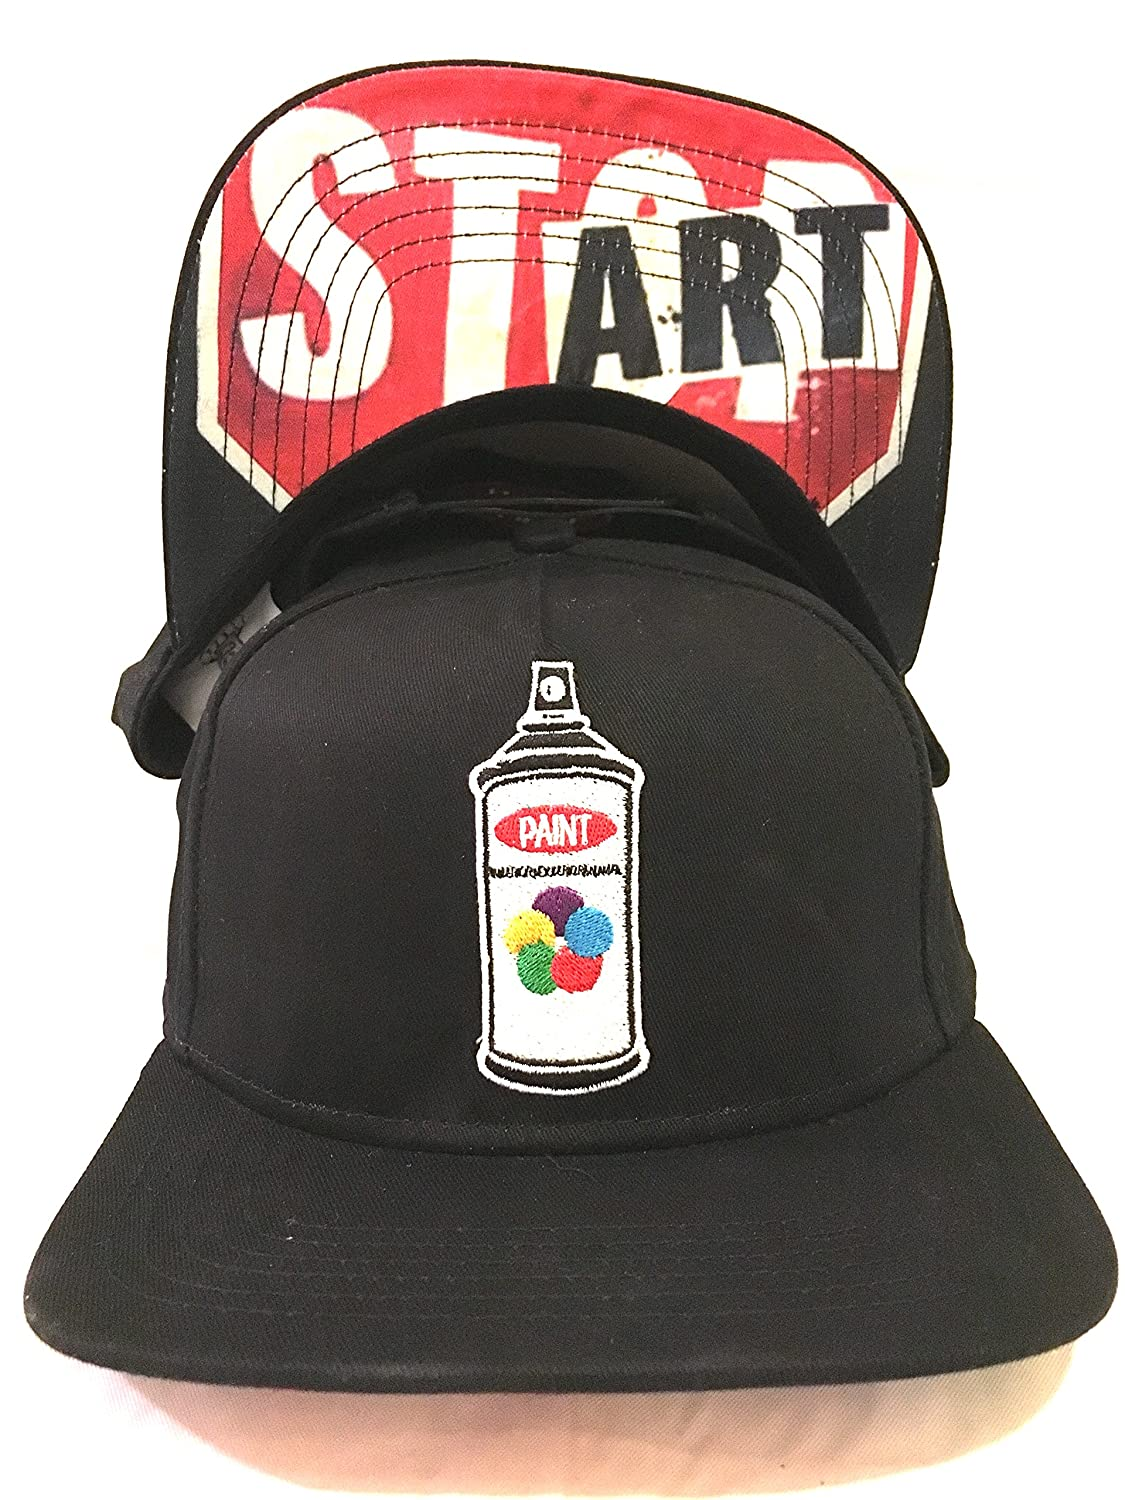 7c6f19193e20a Best Urban street Graffiti art life style Custom made snapback baseball hat  style